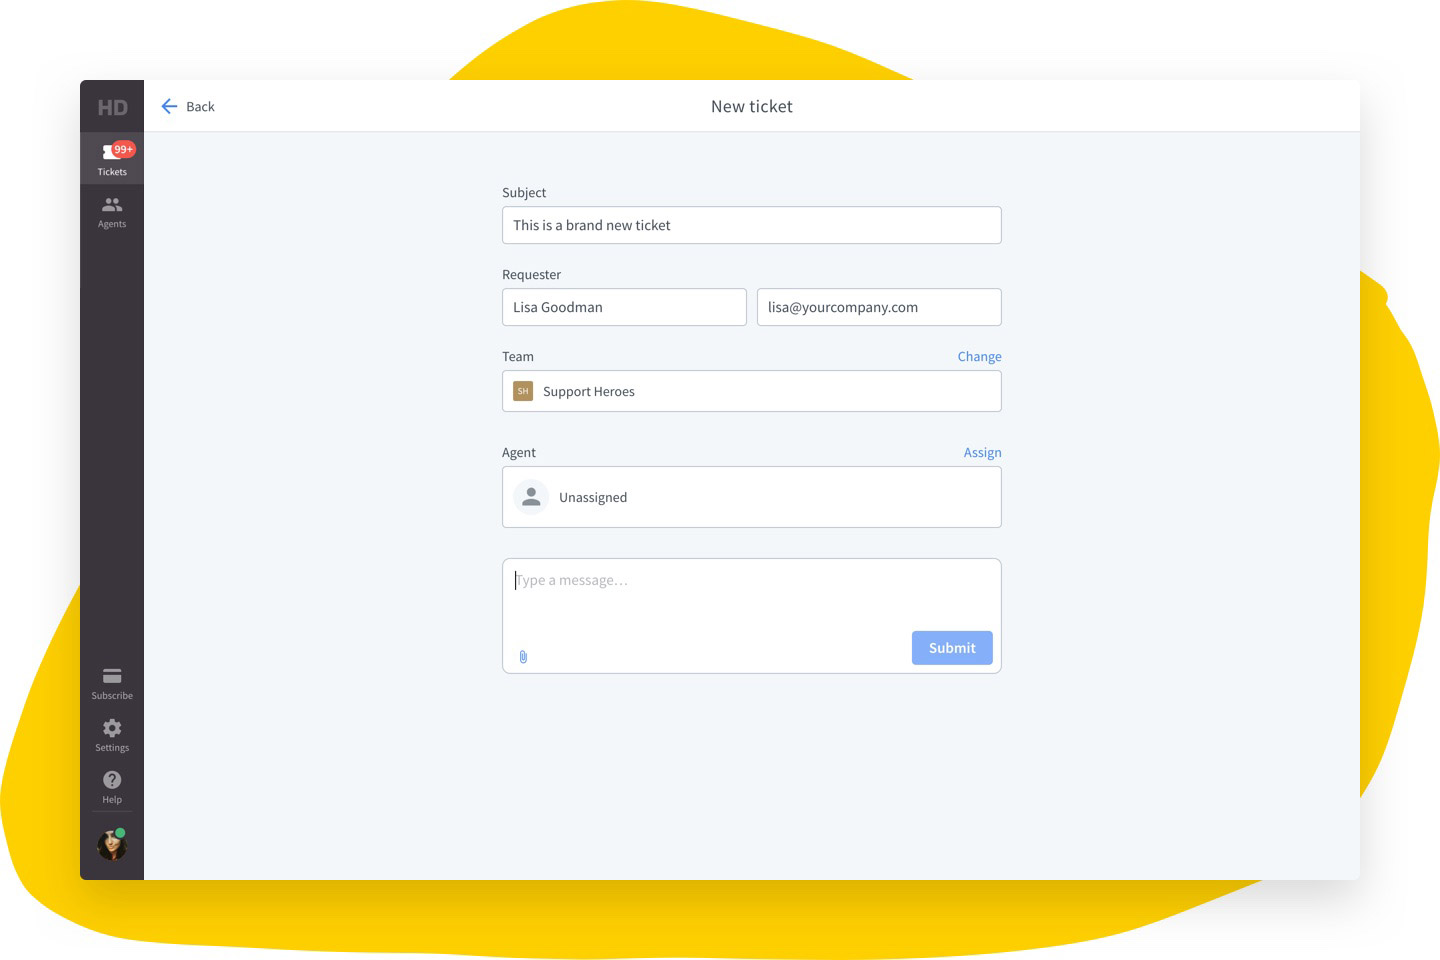 HelpDesk - Creating a ticket view